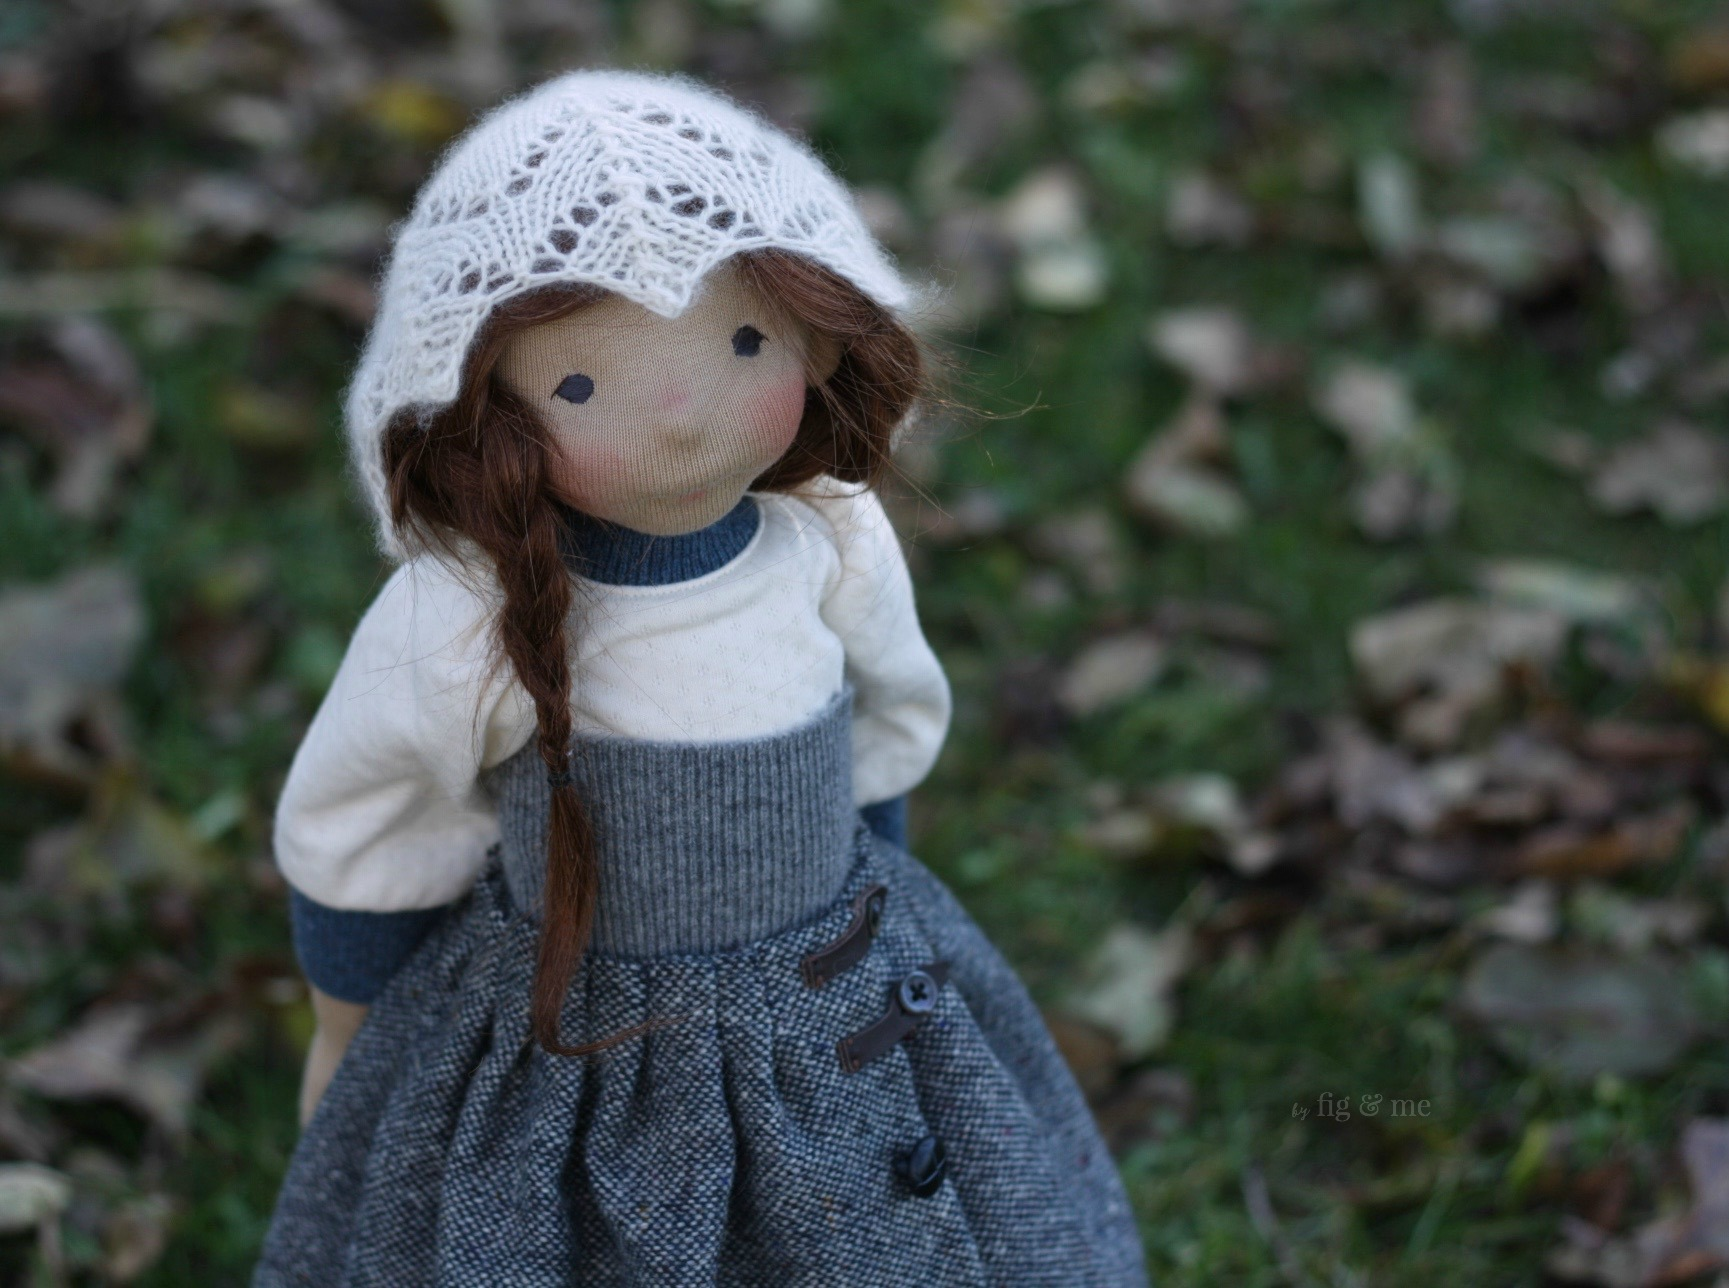 Skye, with her sweet demeanour and gentle ways, a natural fiber art doll by Fig and me.